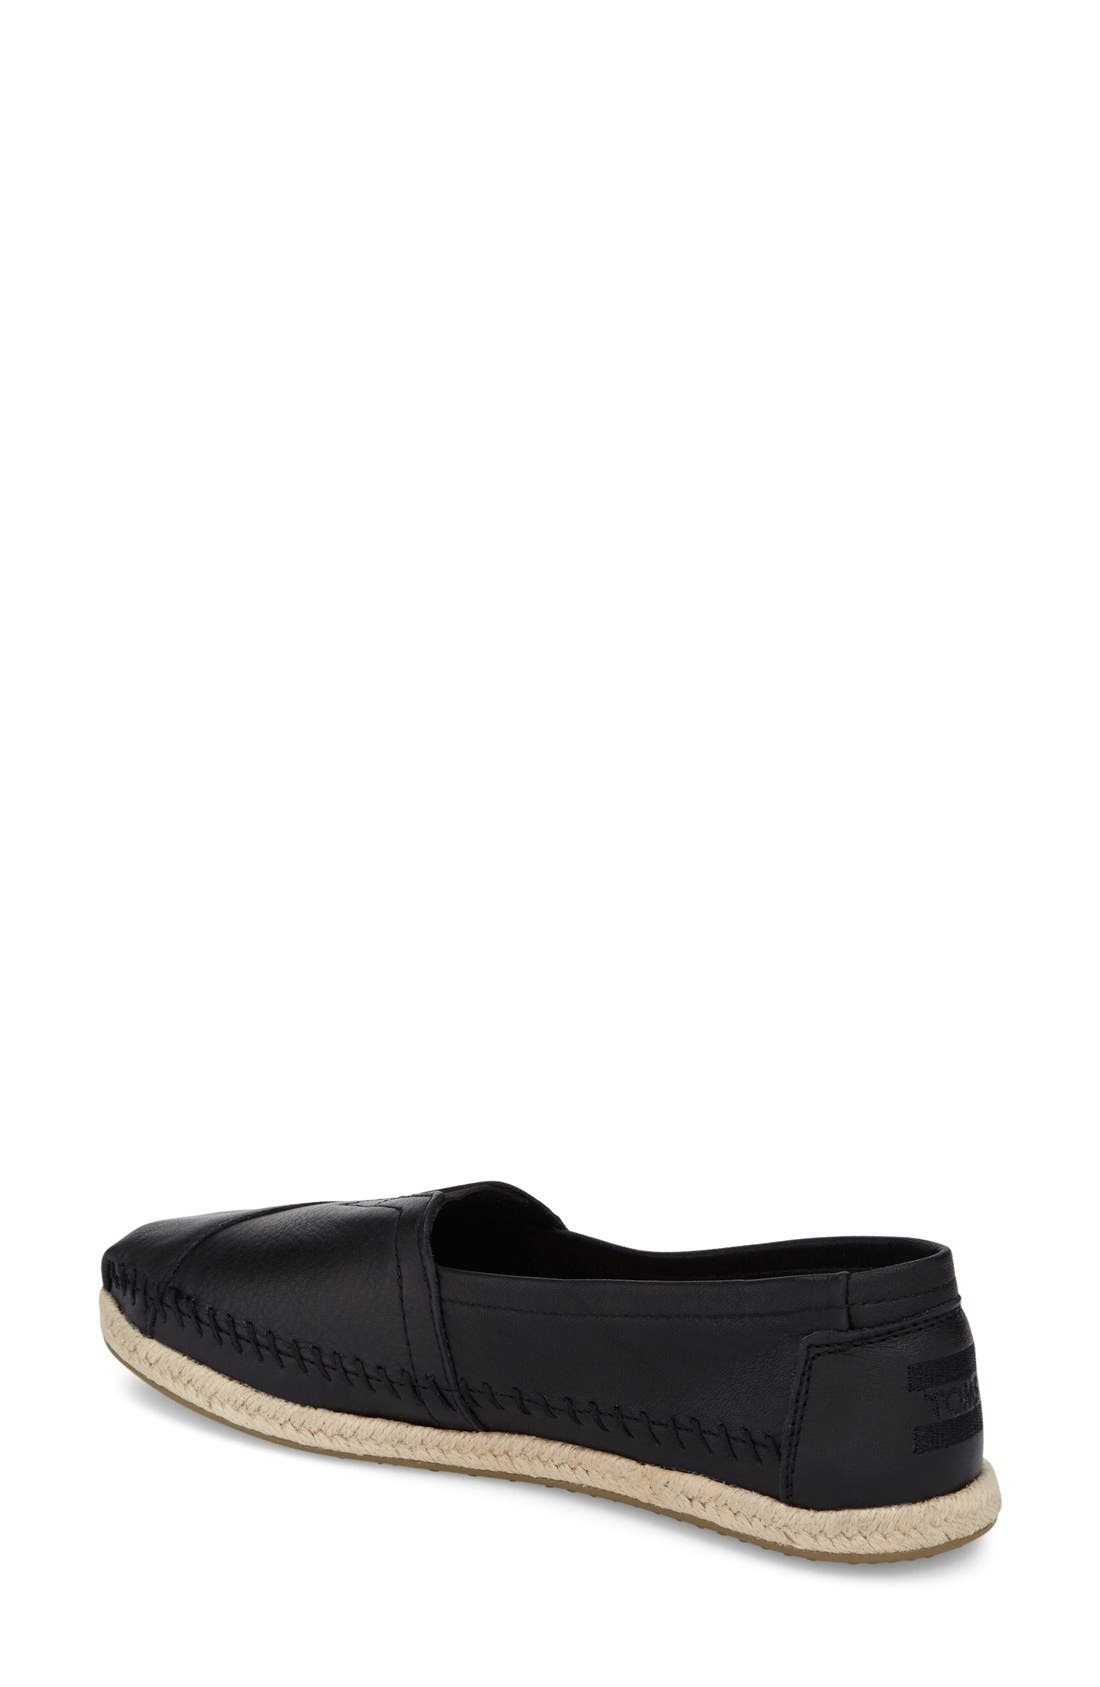 Alternate Image 2  - TOMS 'Classic - Leather' Espadrille Slip-On (Women)